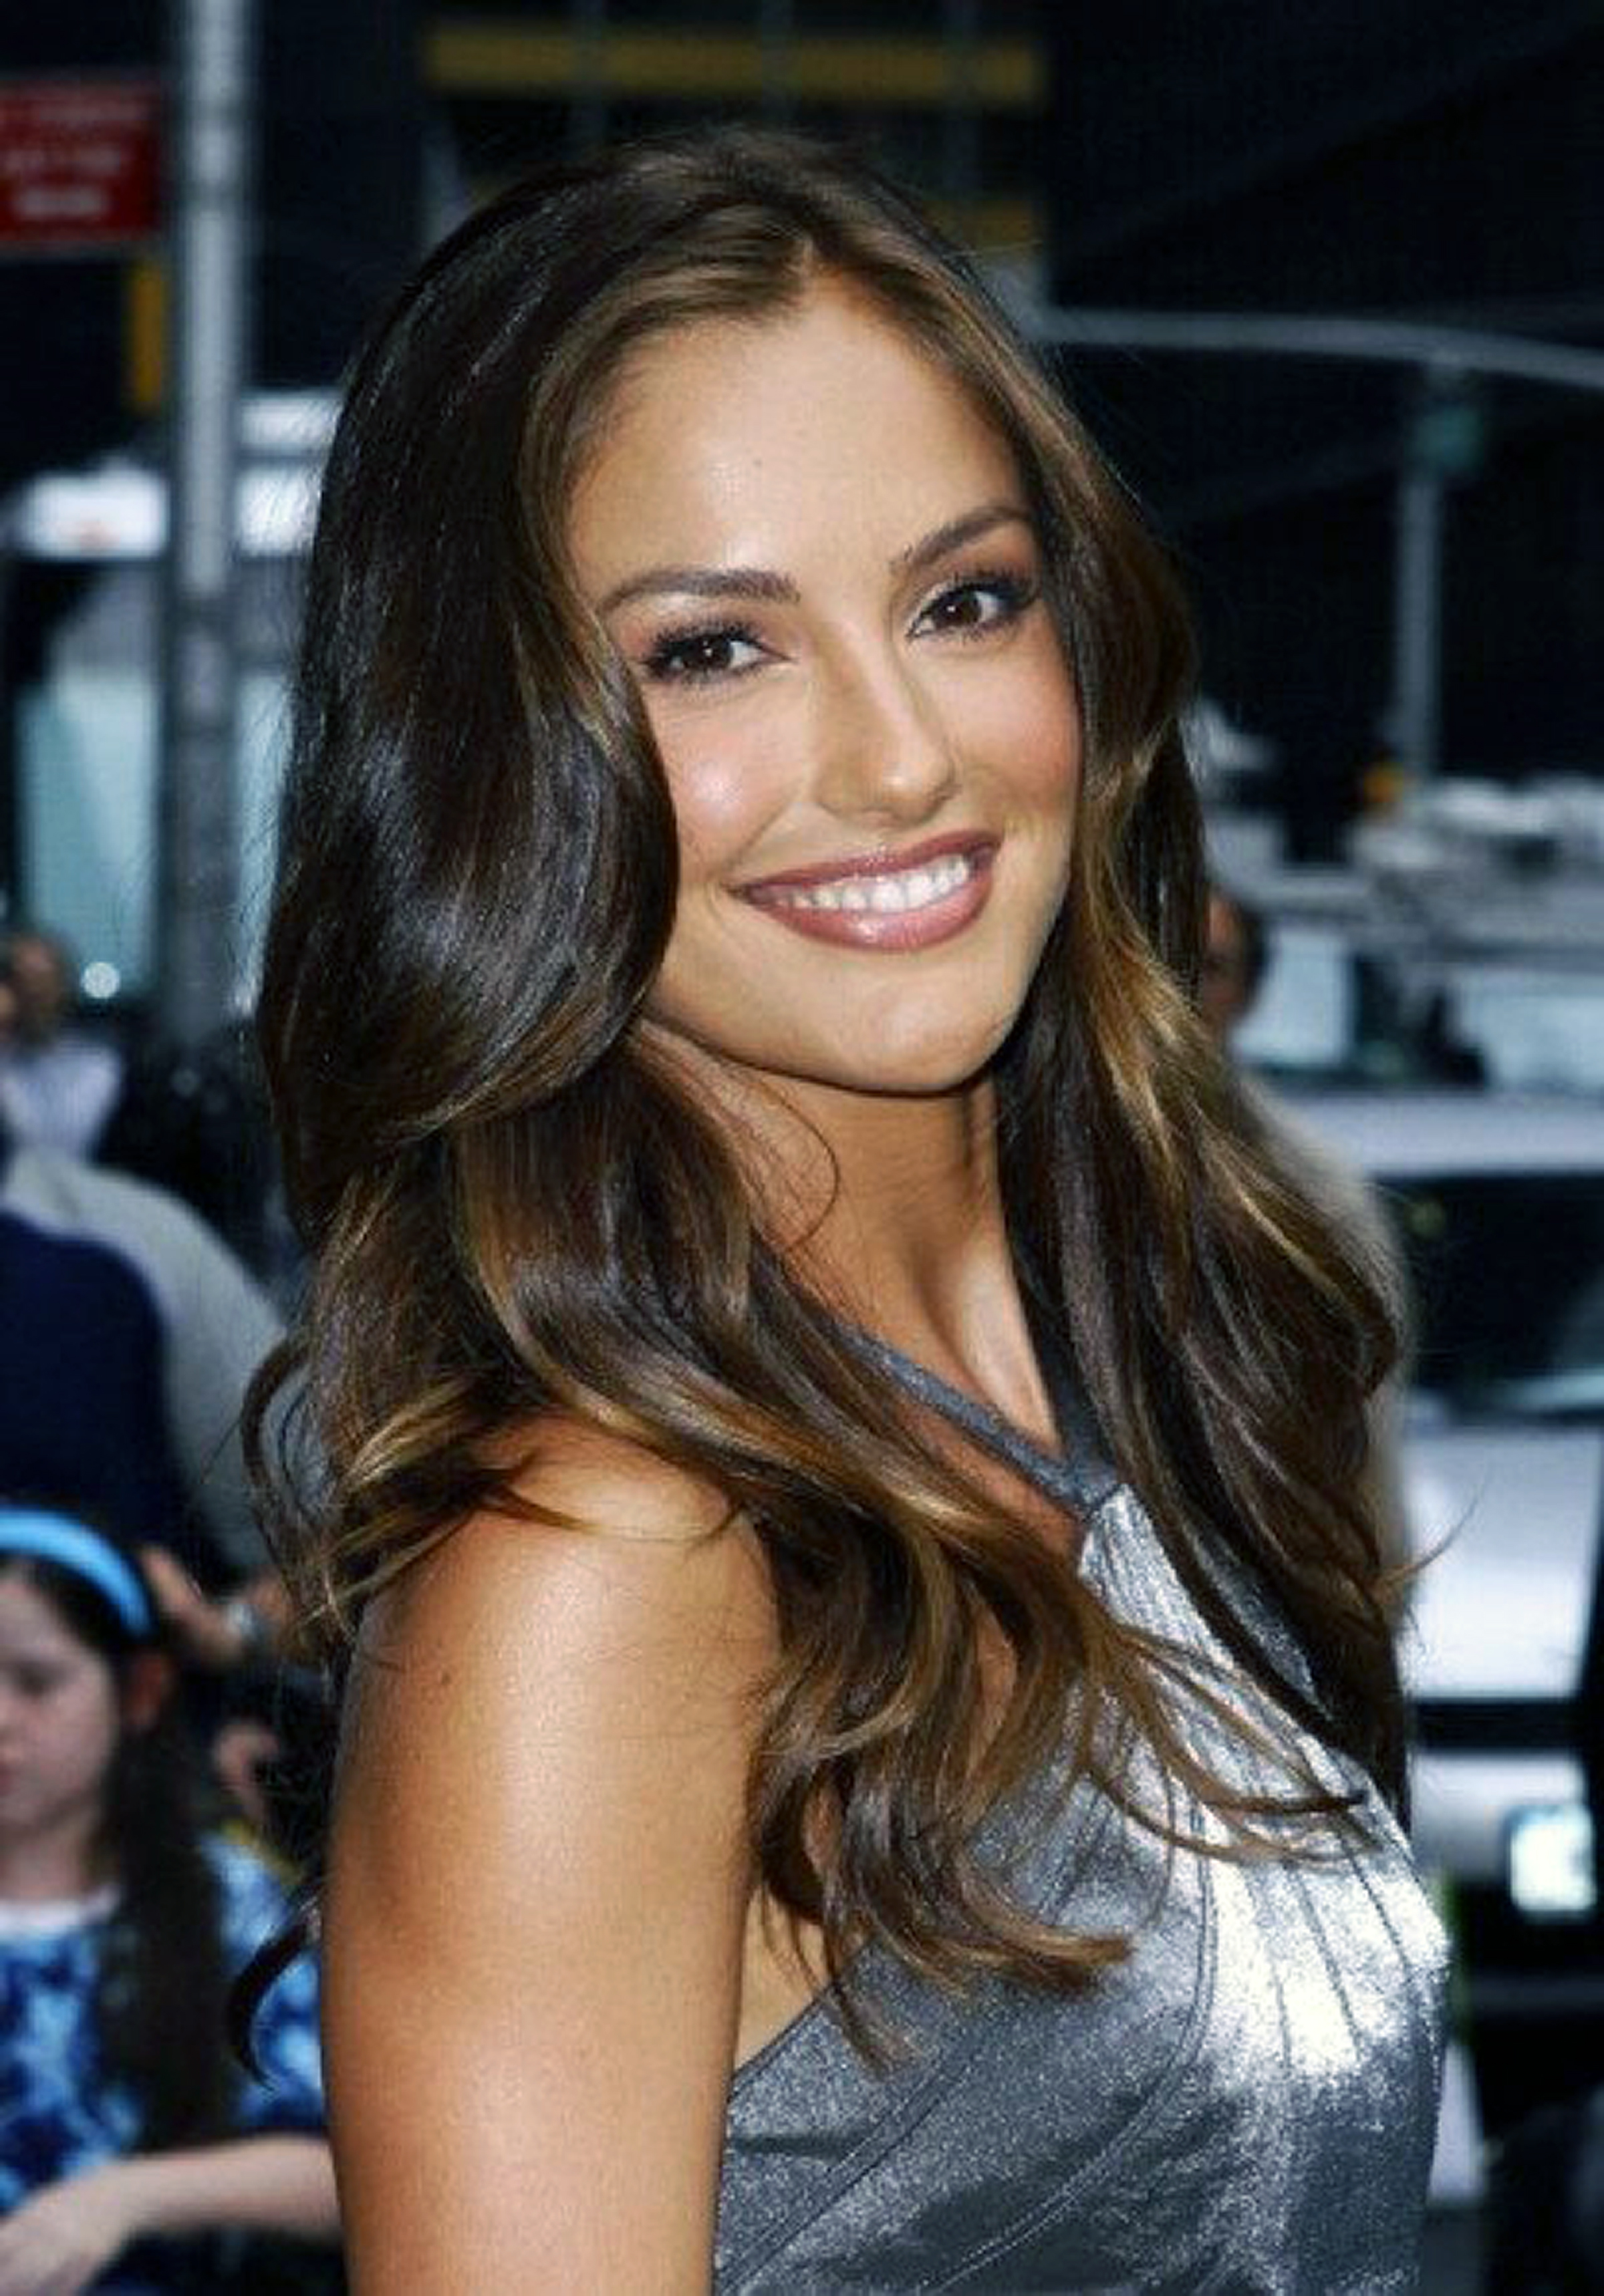 Photos Minka Kelly nudes (52 pics), Sexy